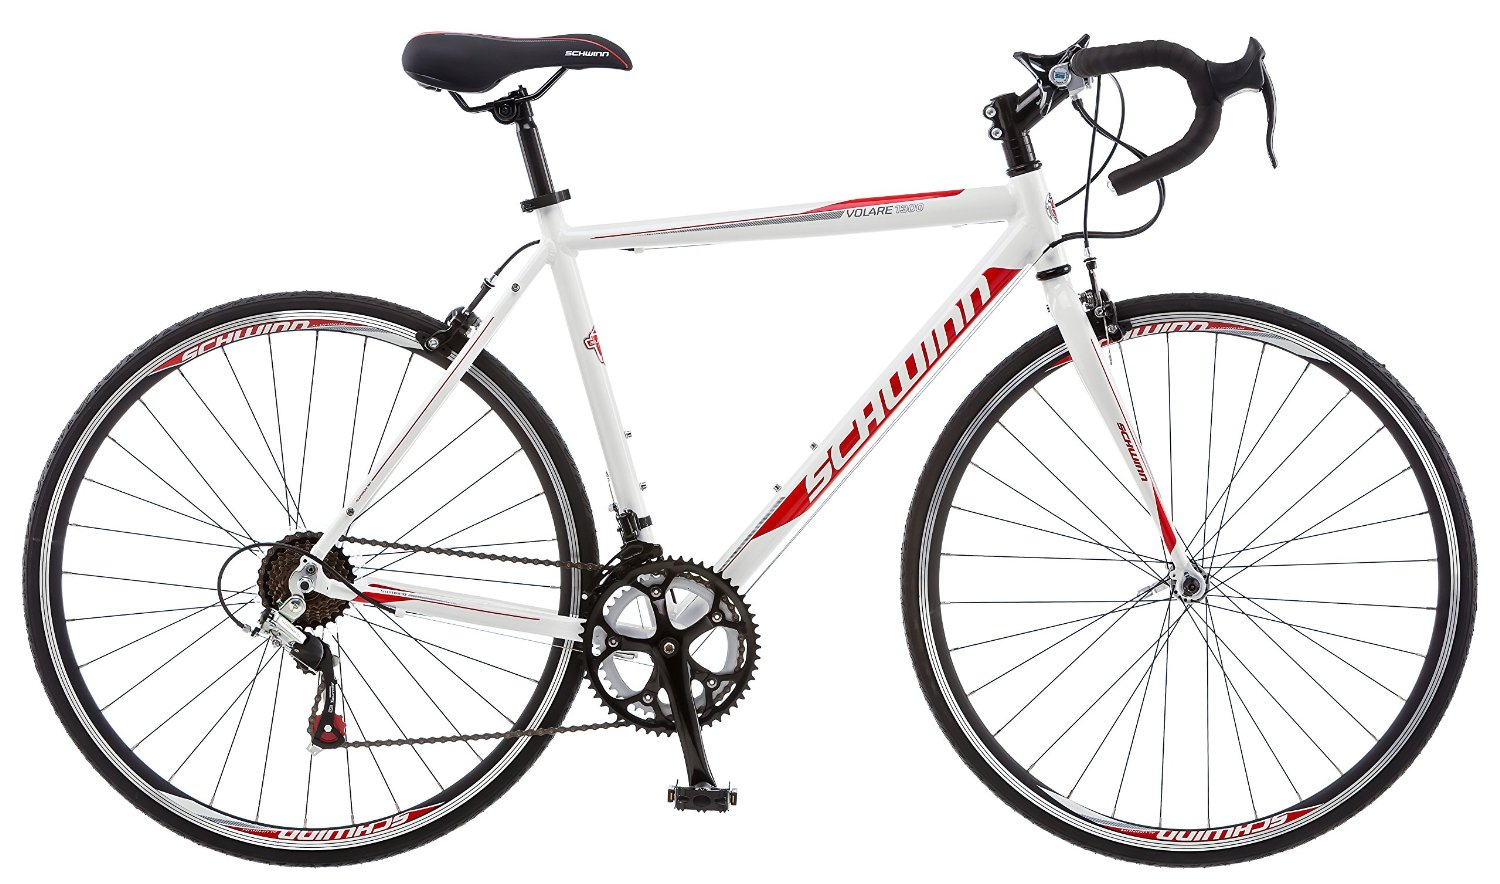 Schwinn Men's Volare 1300 Review